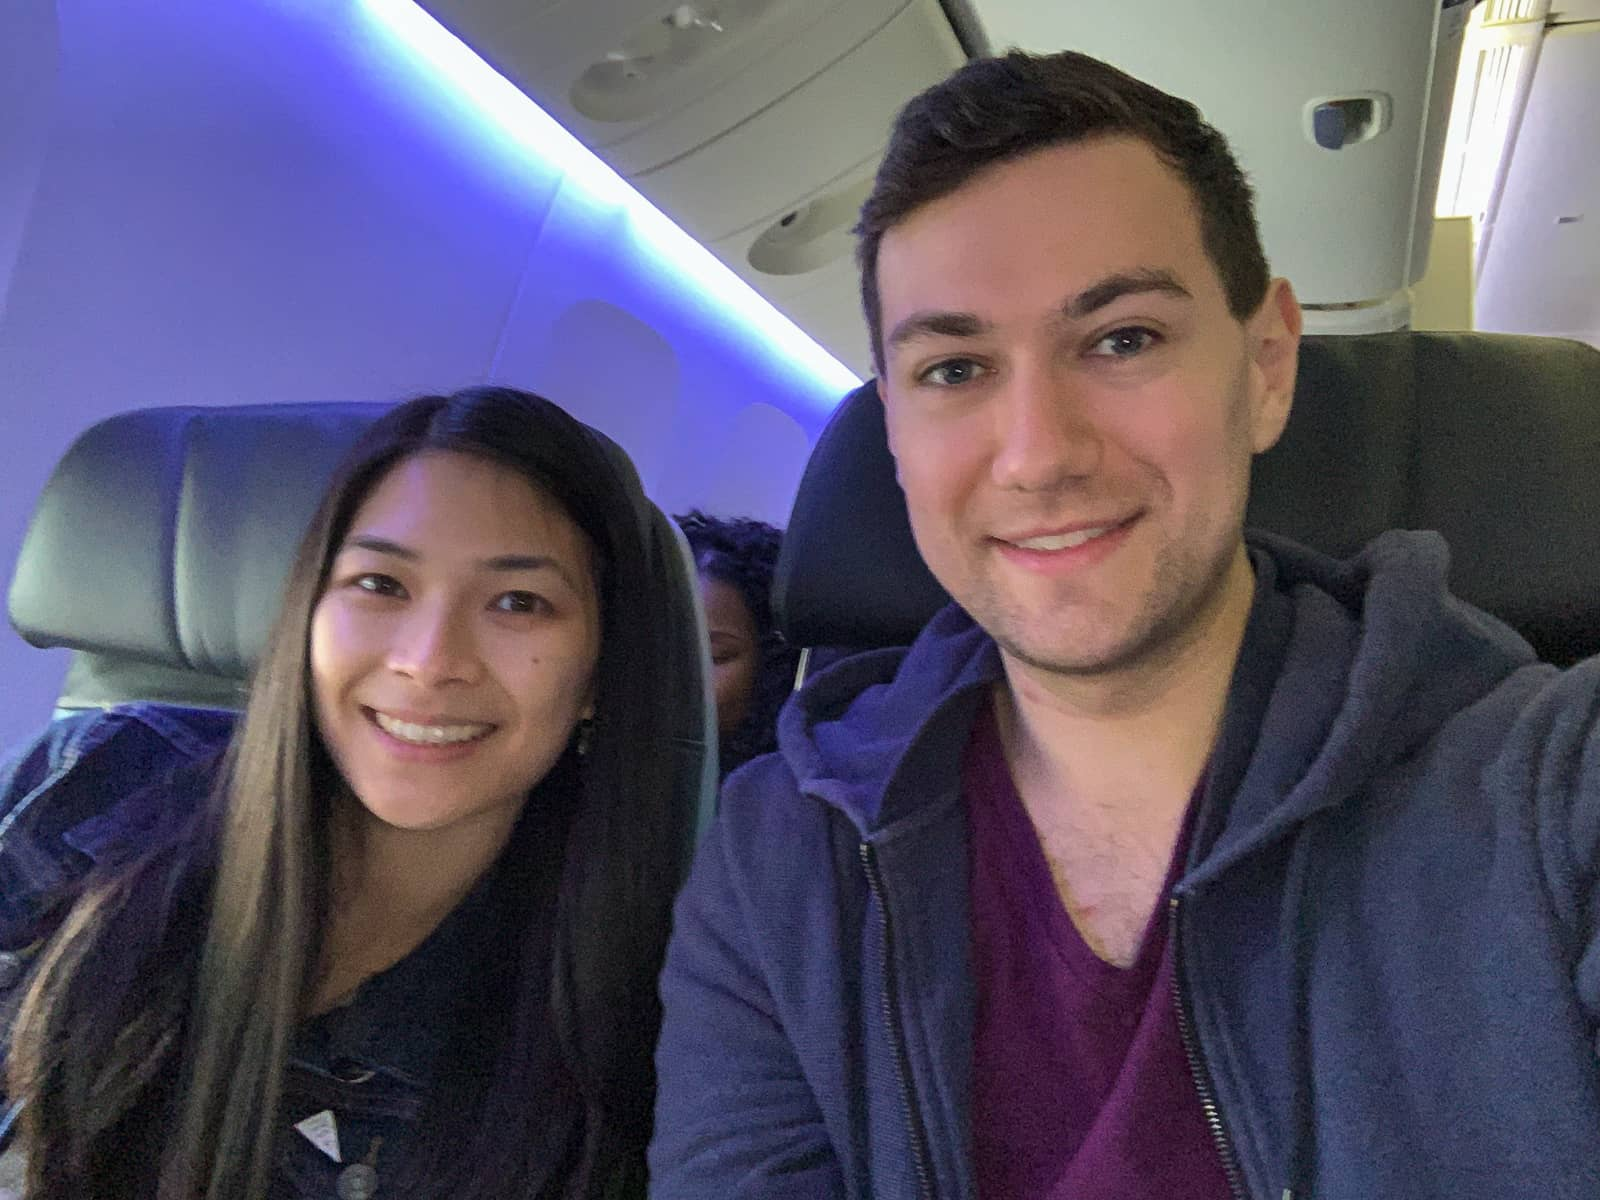 A selfie of a man and woman on a plane, smiling